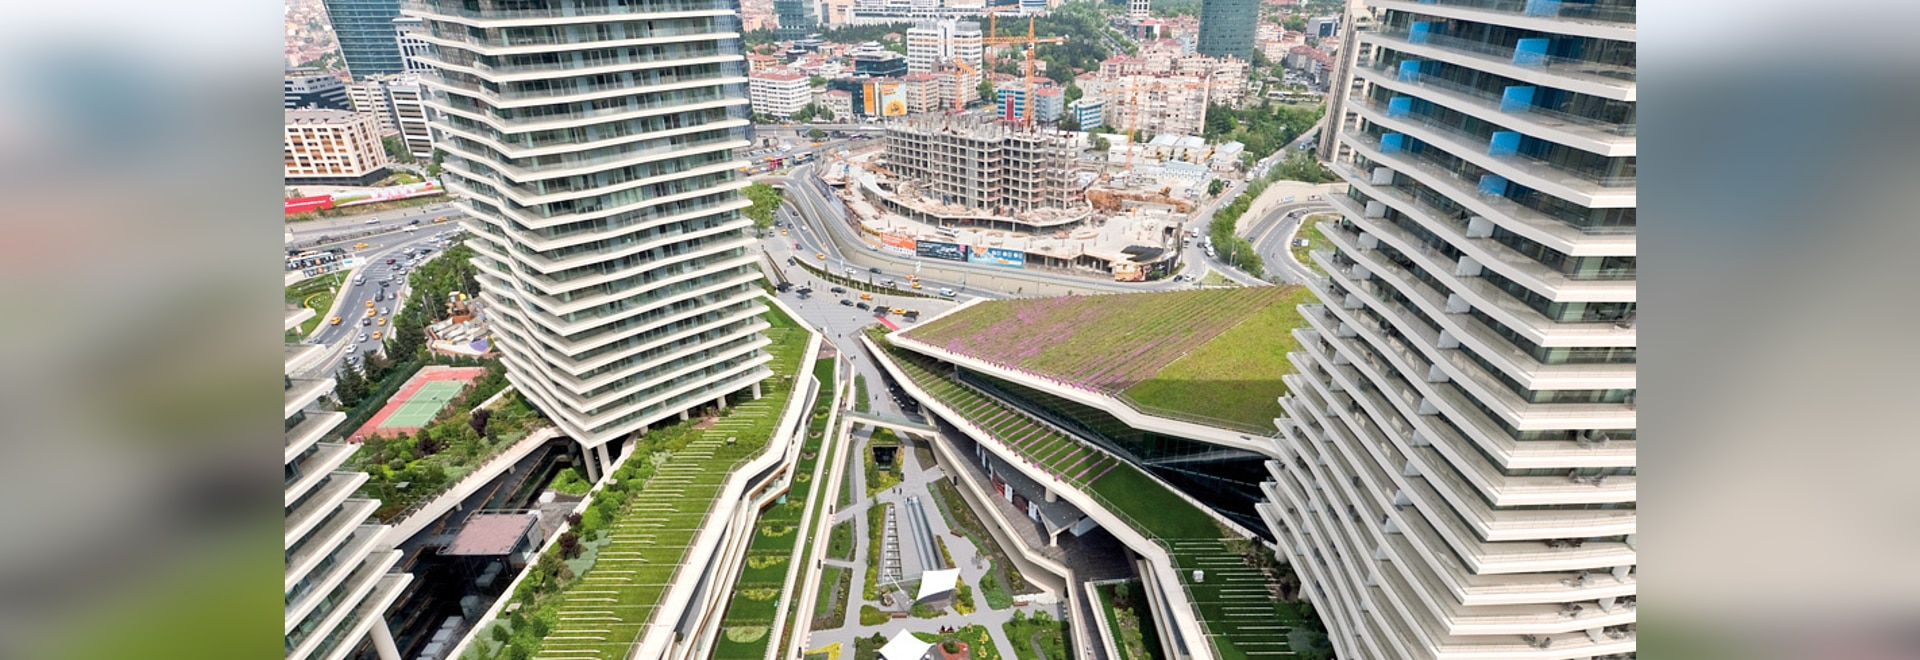 """The system build-up """"Urban Climate Roof"""" provides for increased cooling of the ambient temperature particularly in urban centres"""